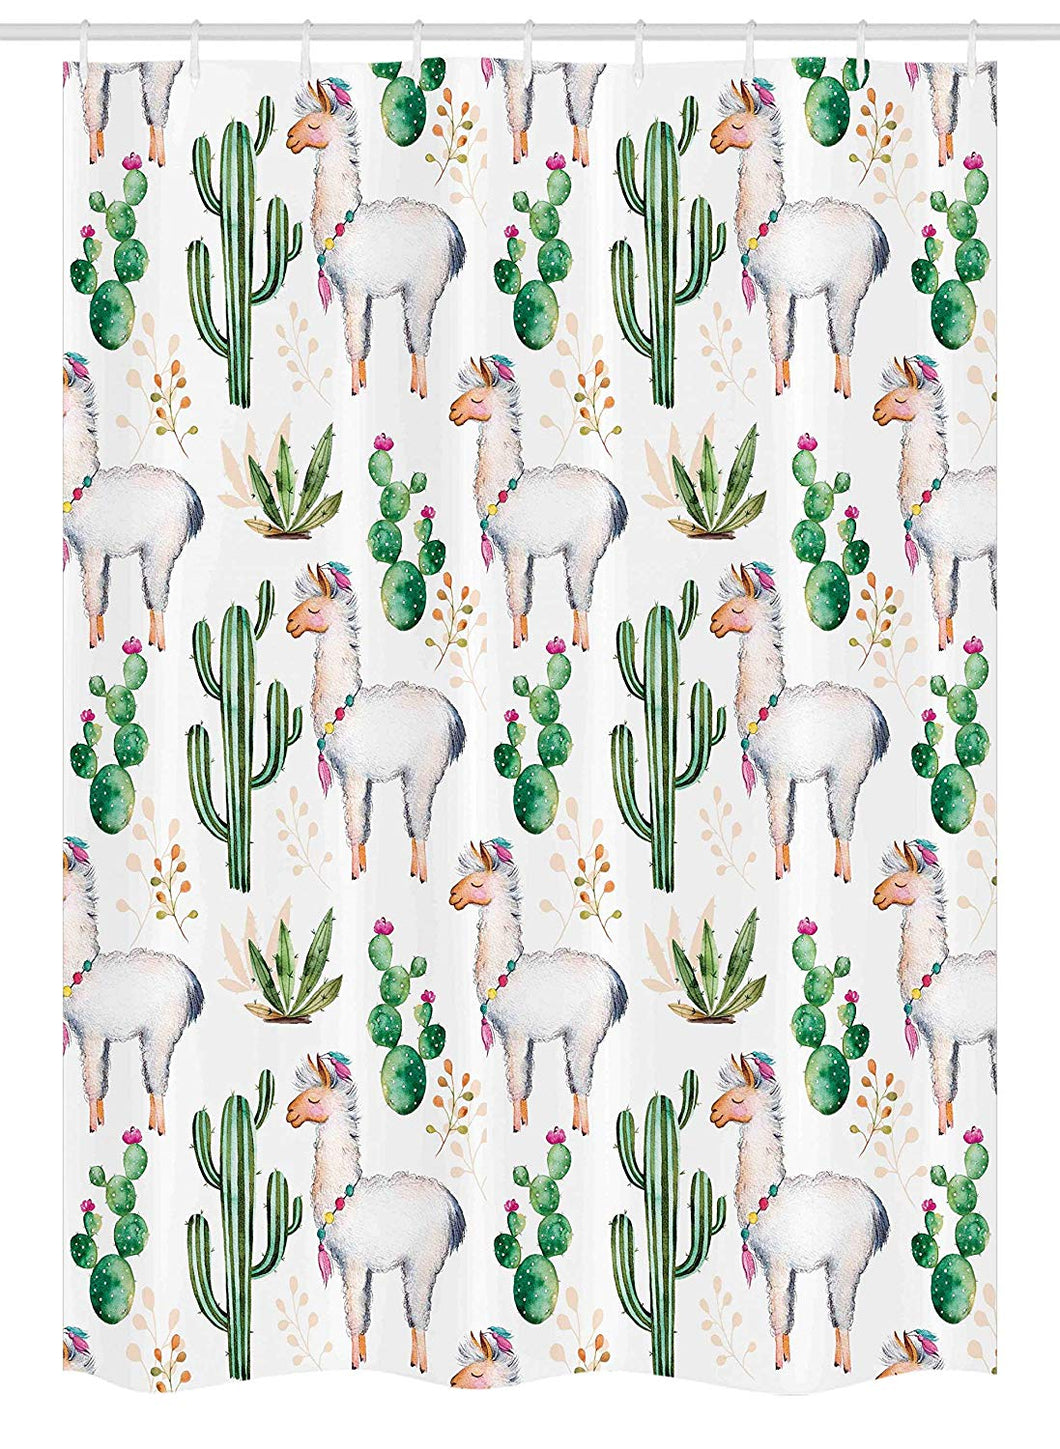 Ambesonne Cactus Stall Shower Curtain, Hot South Desert Plant Cactus Pattern with Camel Animal Modern Colored Image Print, Fabric Bathroom Decor Set with Hooks, 54